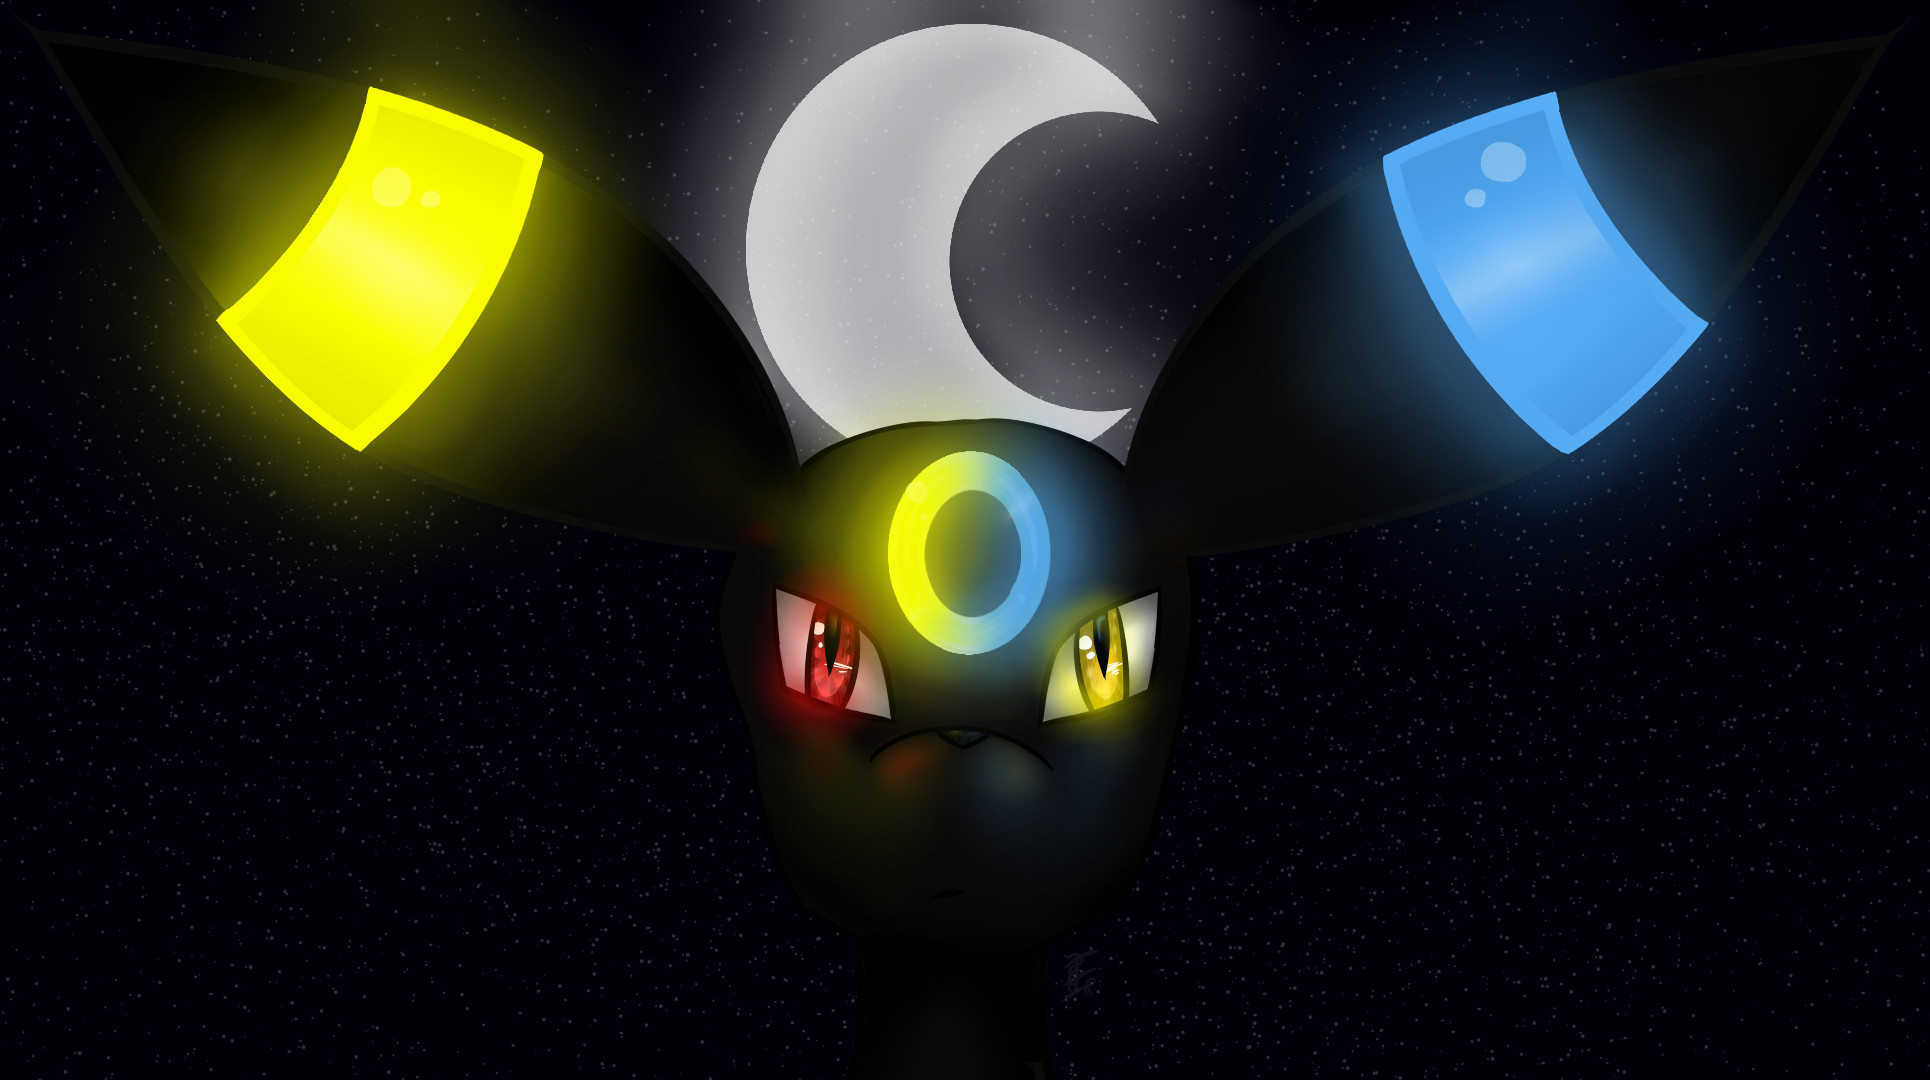 Res: 1930x1080, Umbreon Two Sides {Pokemons} by EndRei71 on DeviantArt